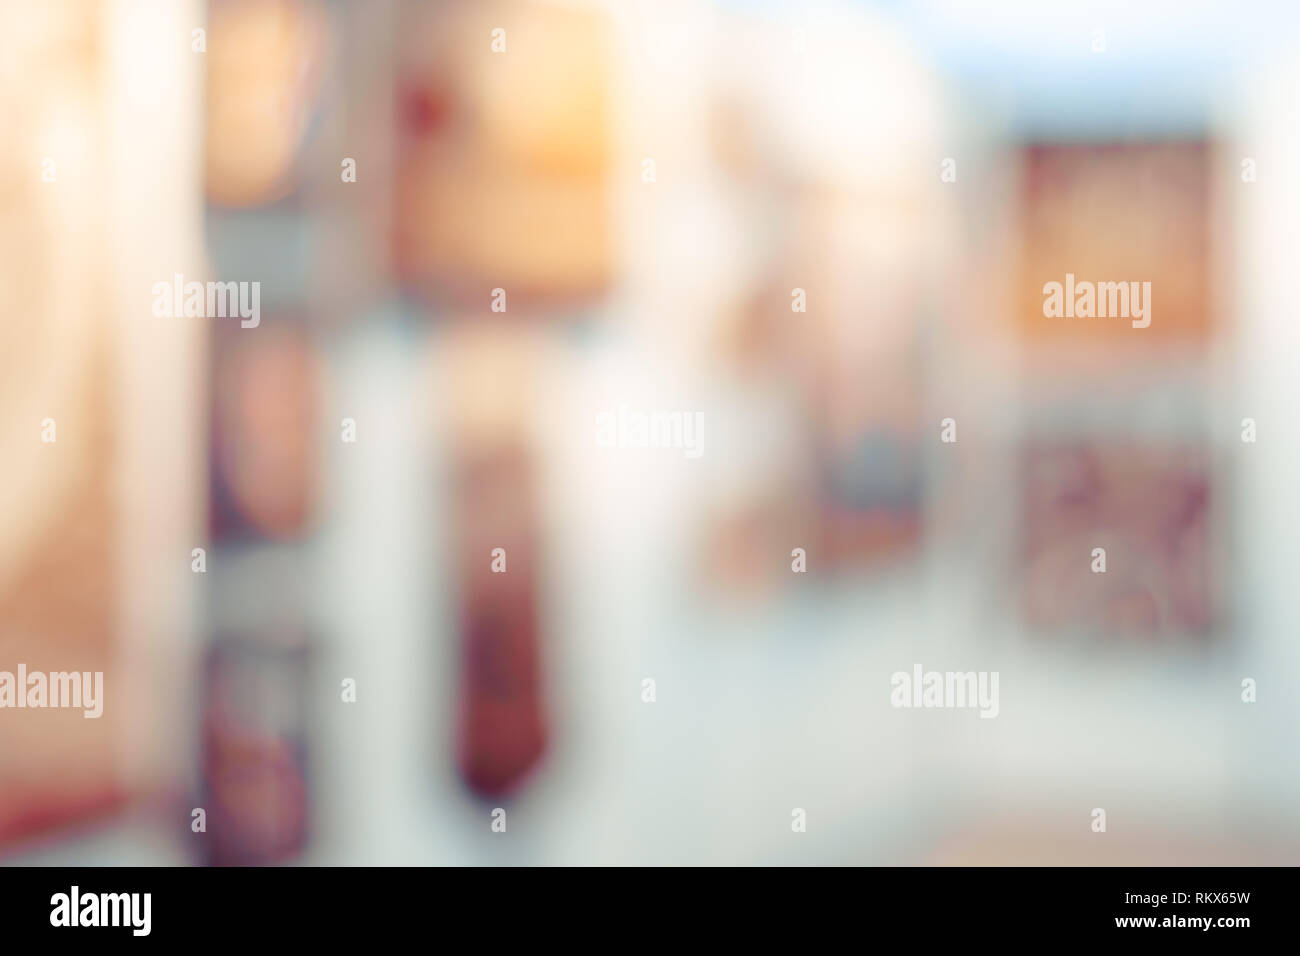 Abstract blur contemporary art gallery for background usage - Stock Image